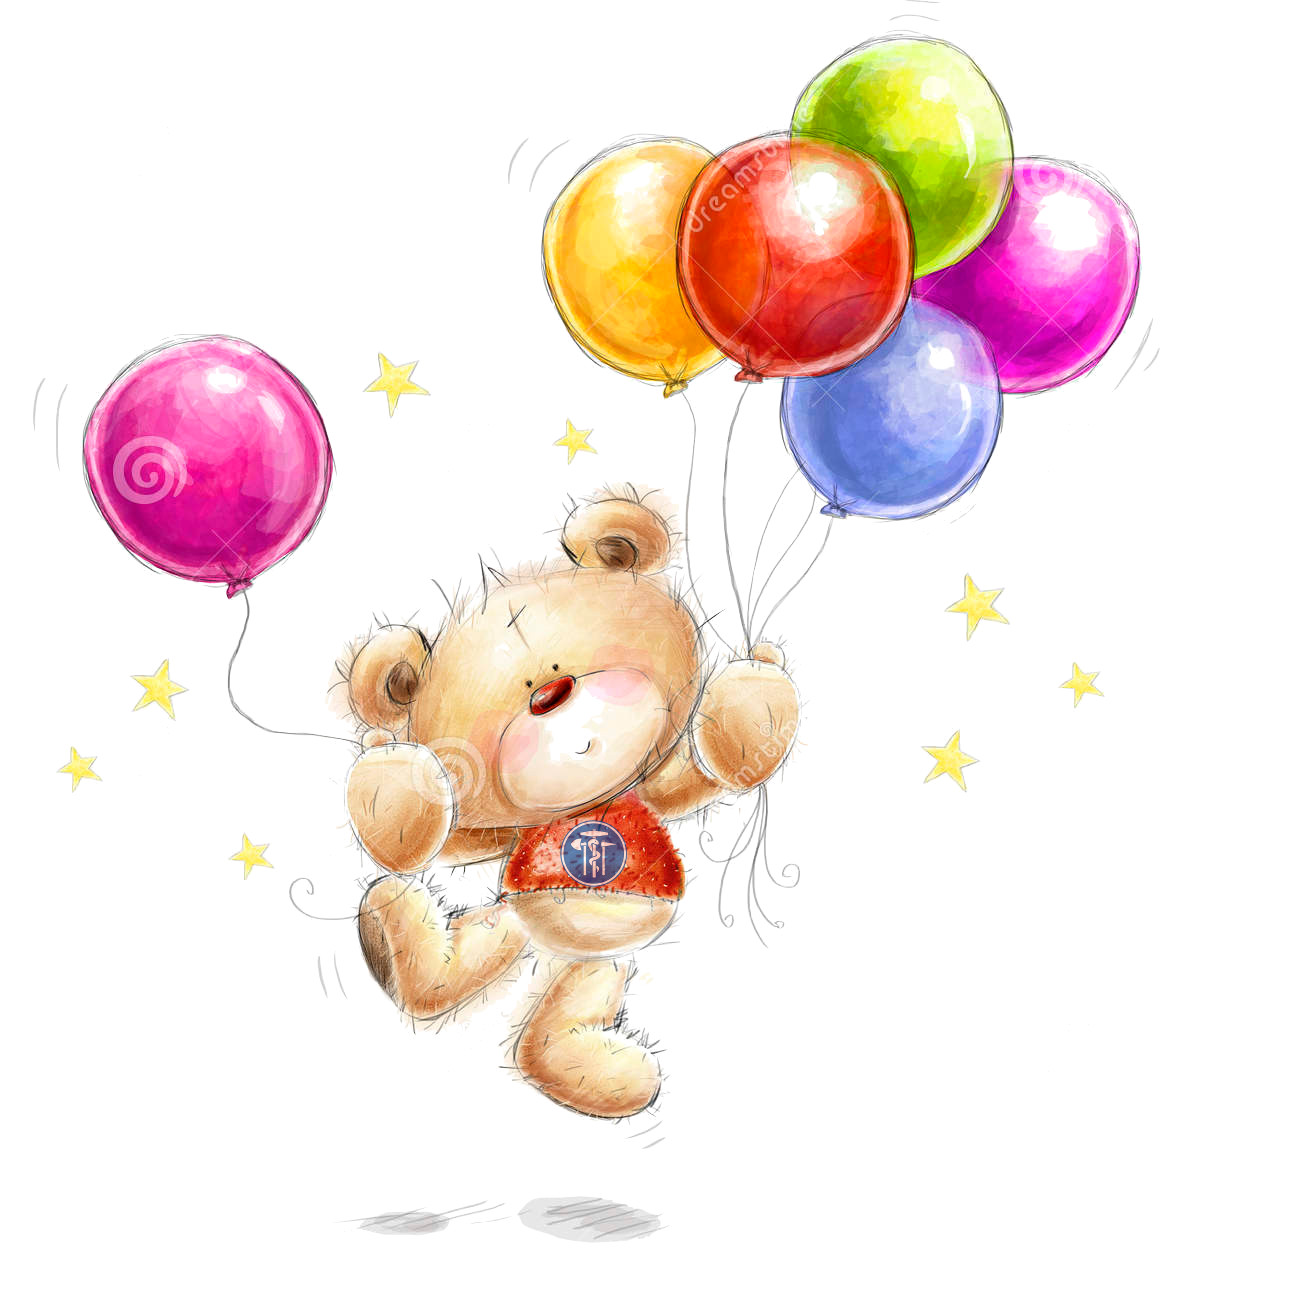 http://www.dreamstime.com/royalty-free-stock-photos-birthday-greeting-card-cute-teddy-bear-colorful-balloons-stars-background-hand-drawn-white-background-image42161428